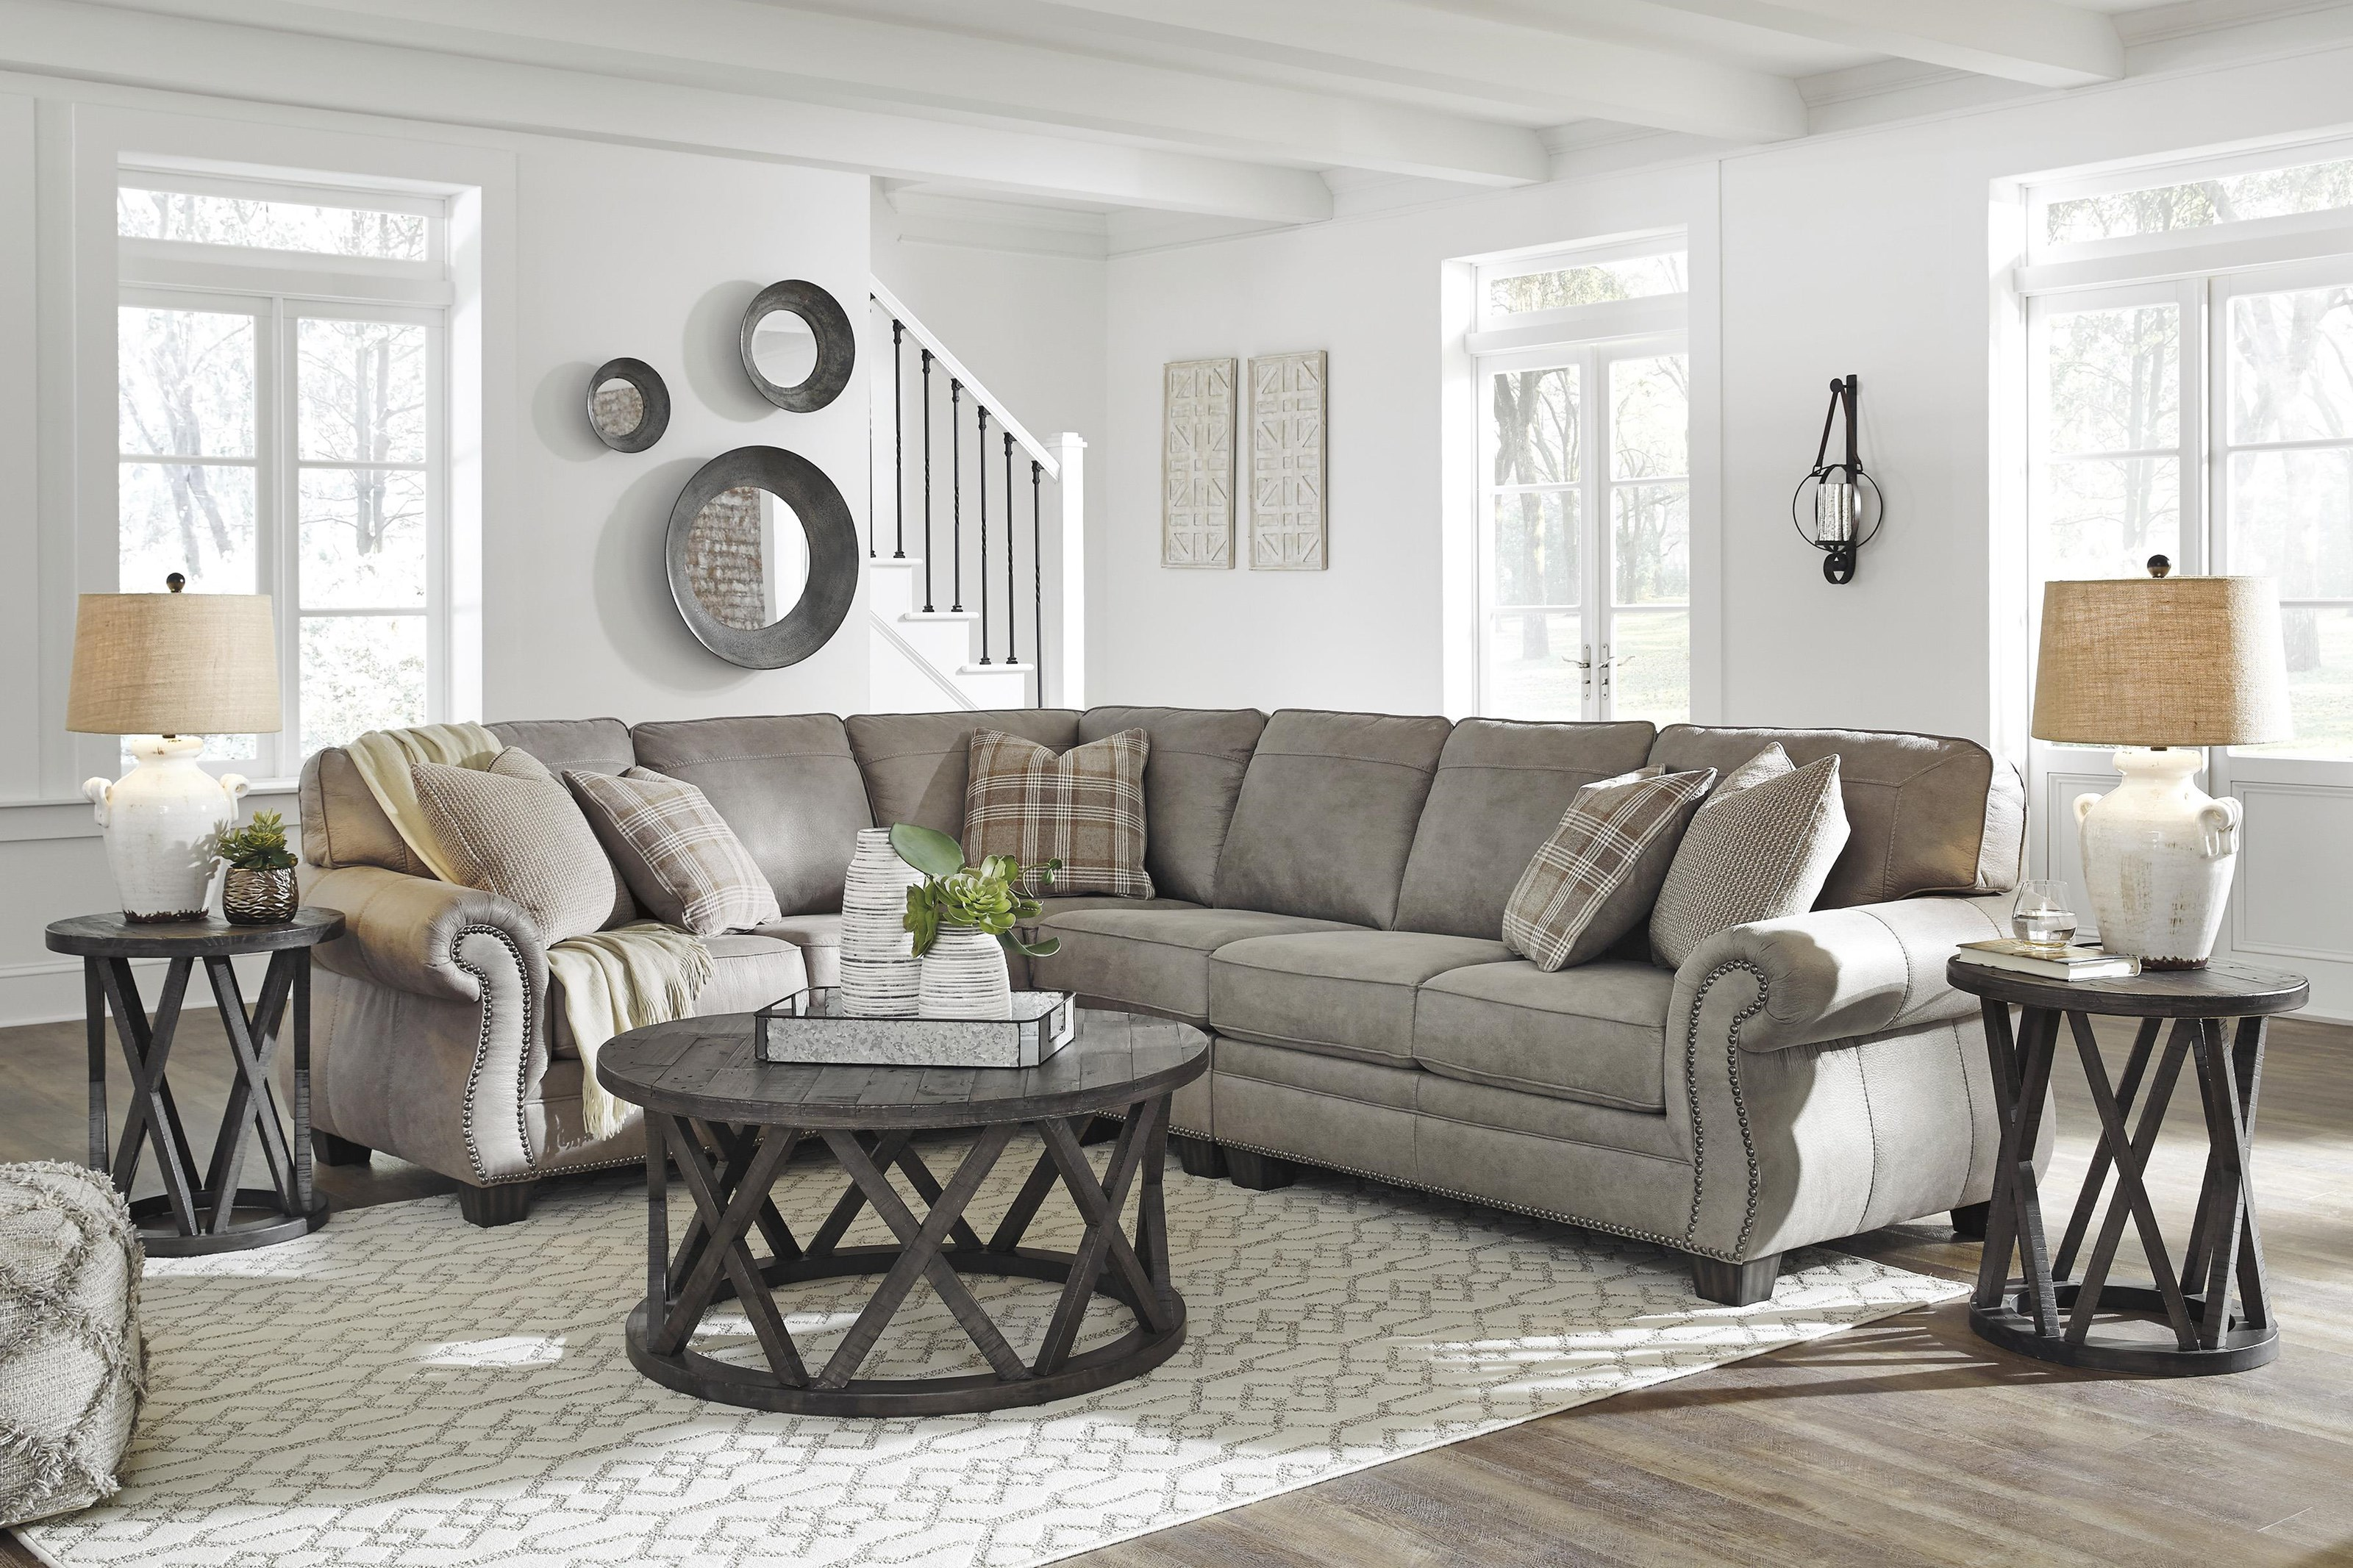 Olsberg 3 Piece Sectional Sofa and Recliner Set by Signature Design by Ashley at Sam Levitz Furniture